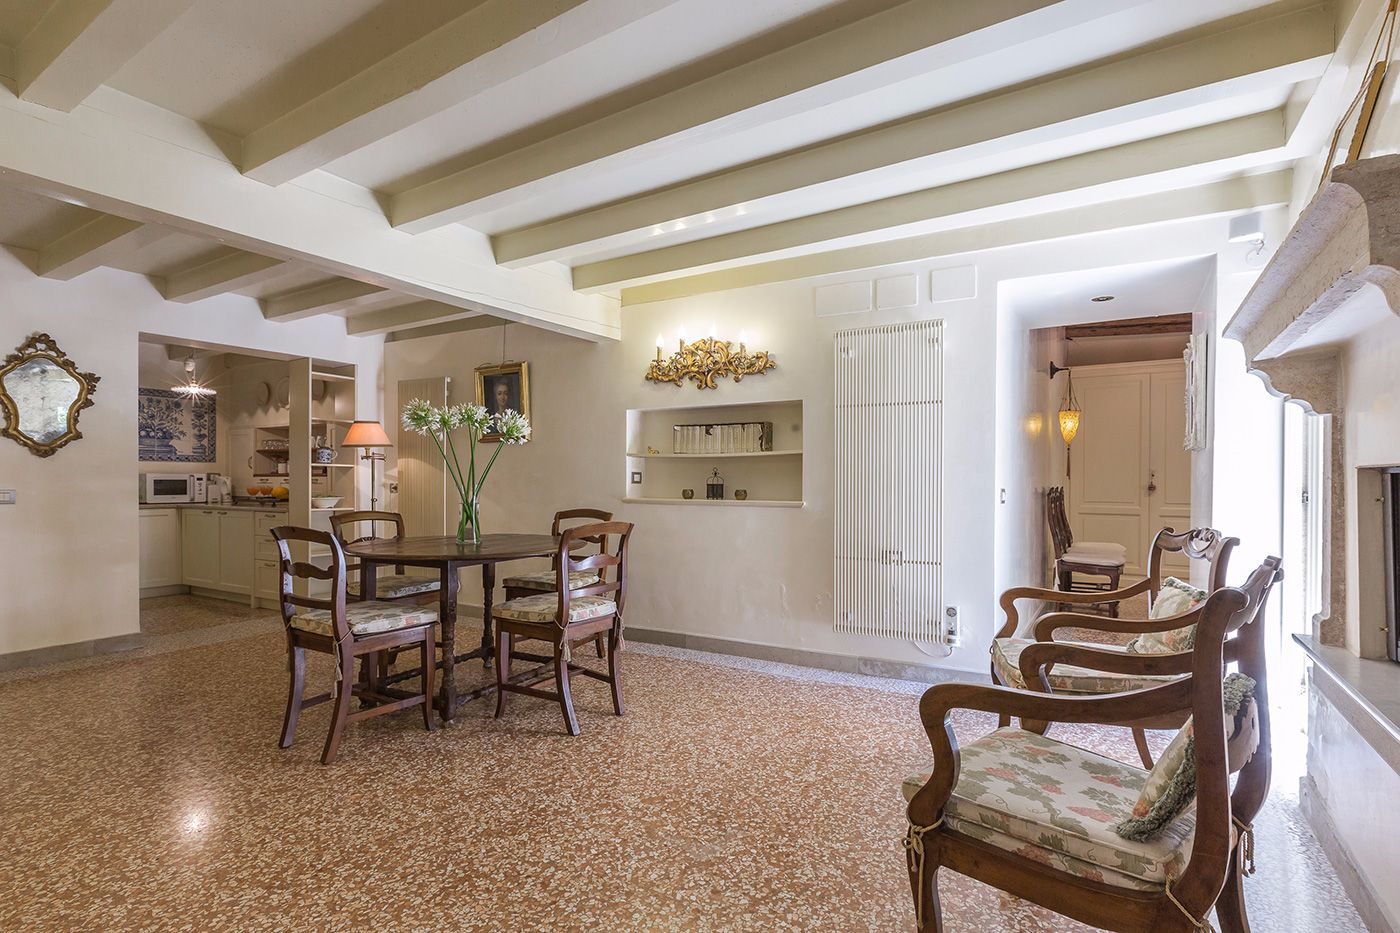 the dining room give access to the living room and courtyard